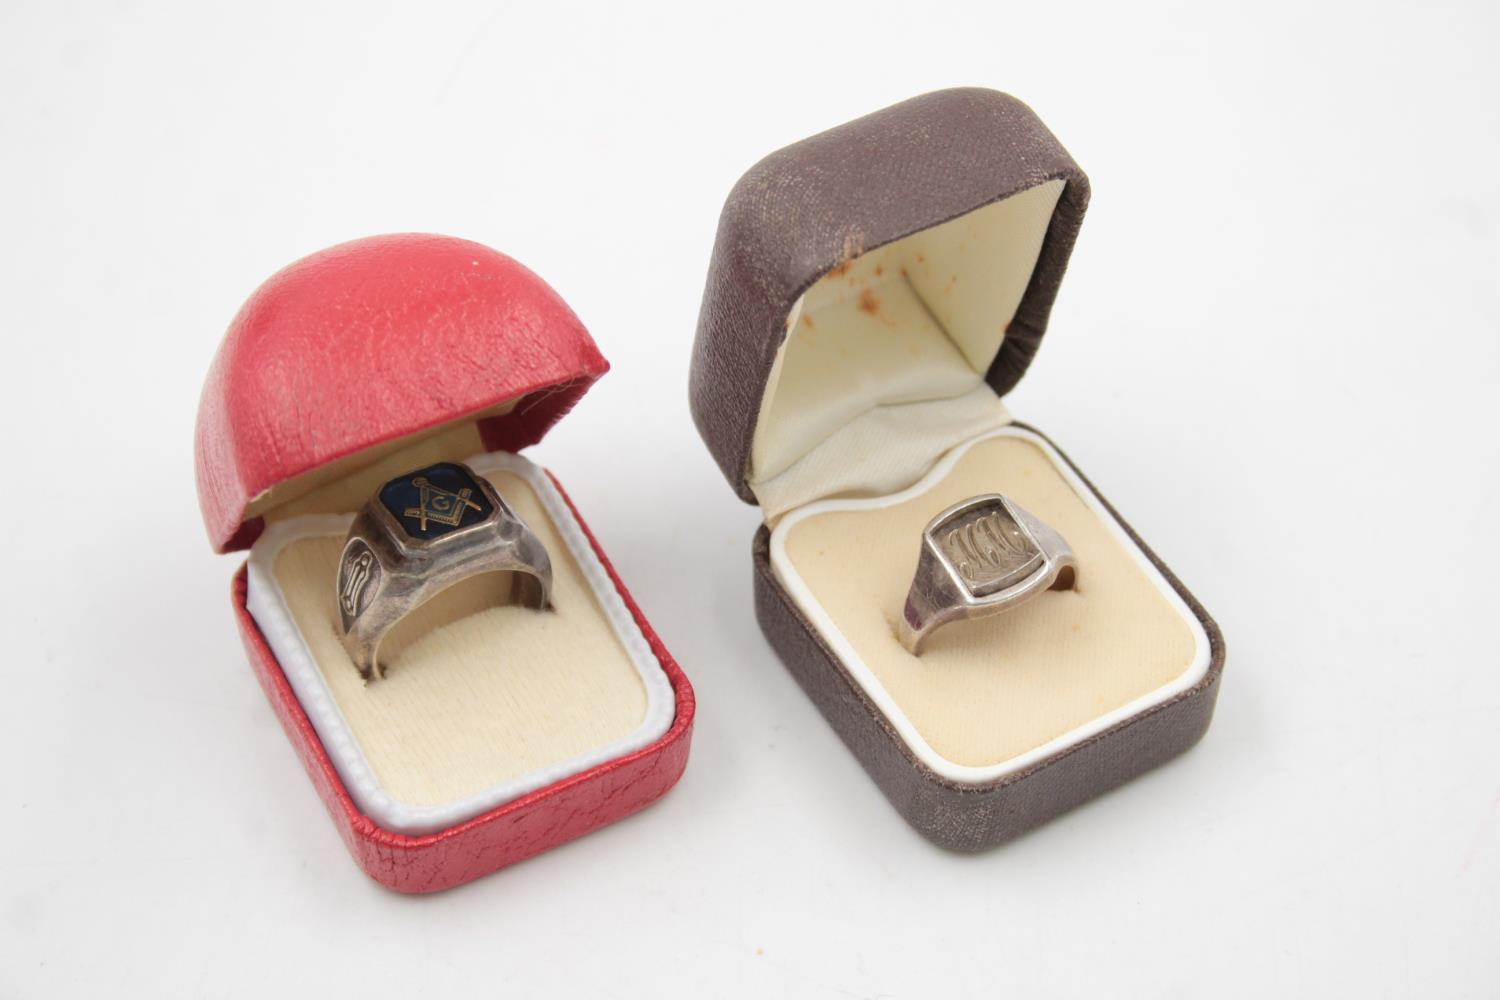 2 x Vintage Gents Stamped .925 STERLING SILVER Masonic Rings Boxed (18g)